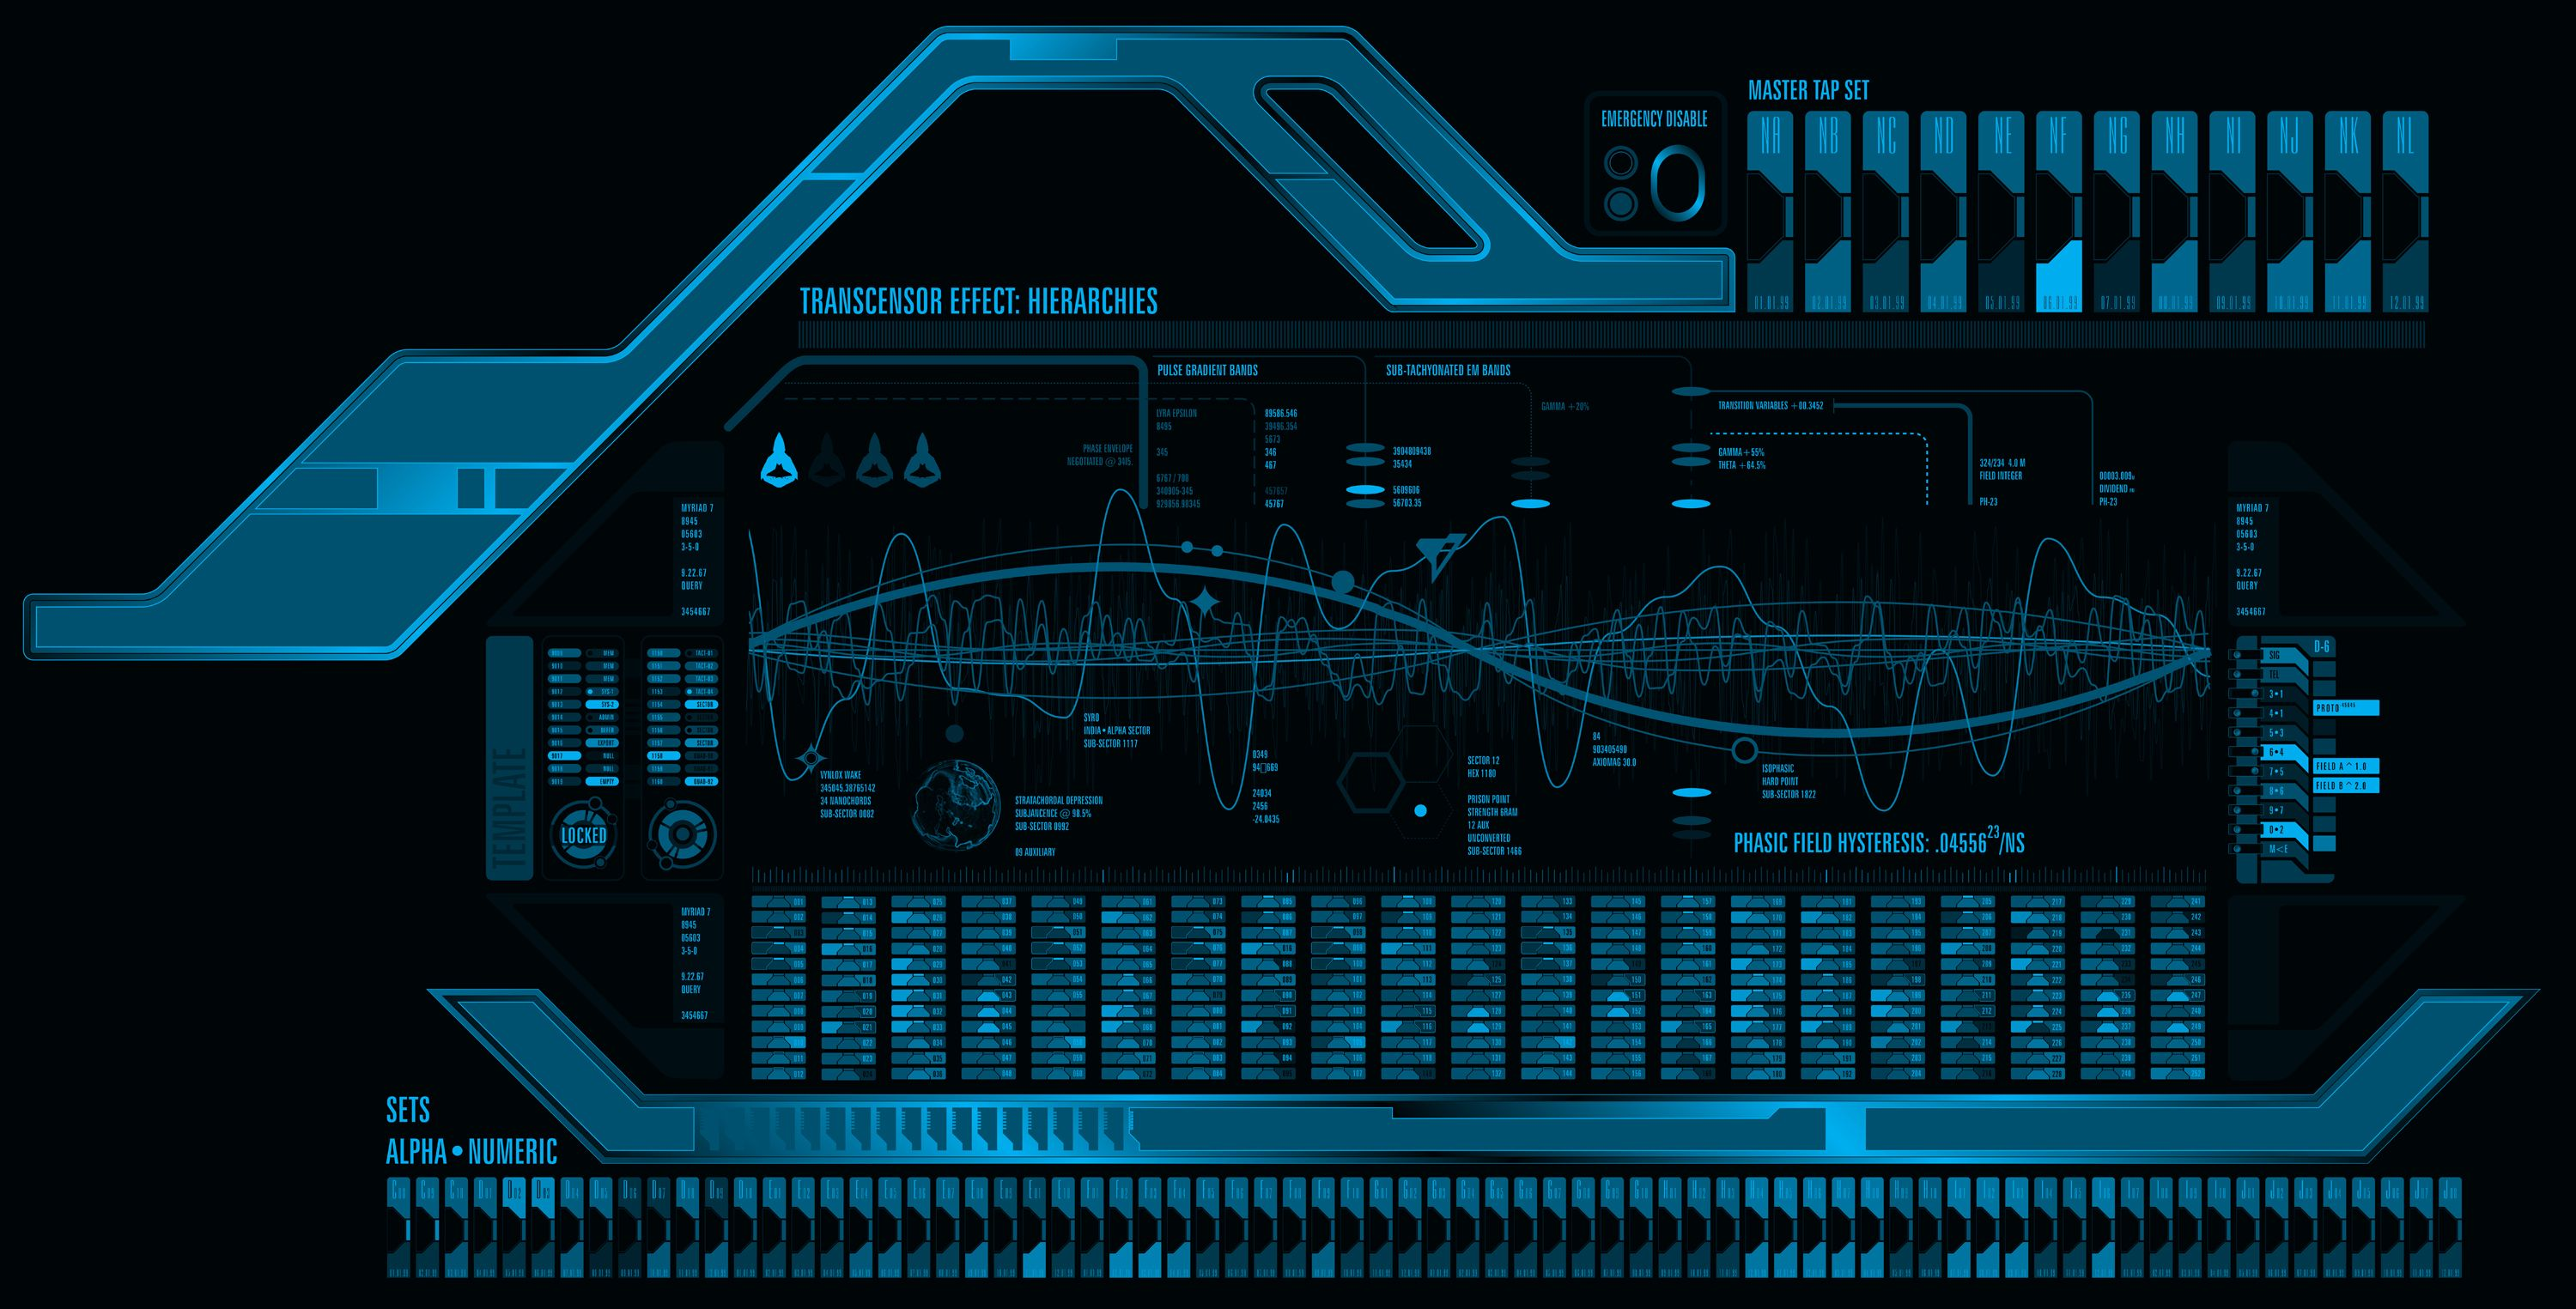 Sci-Fi Interface elements 3D Model | CGTrader.com